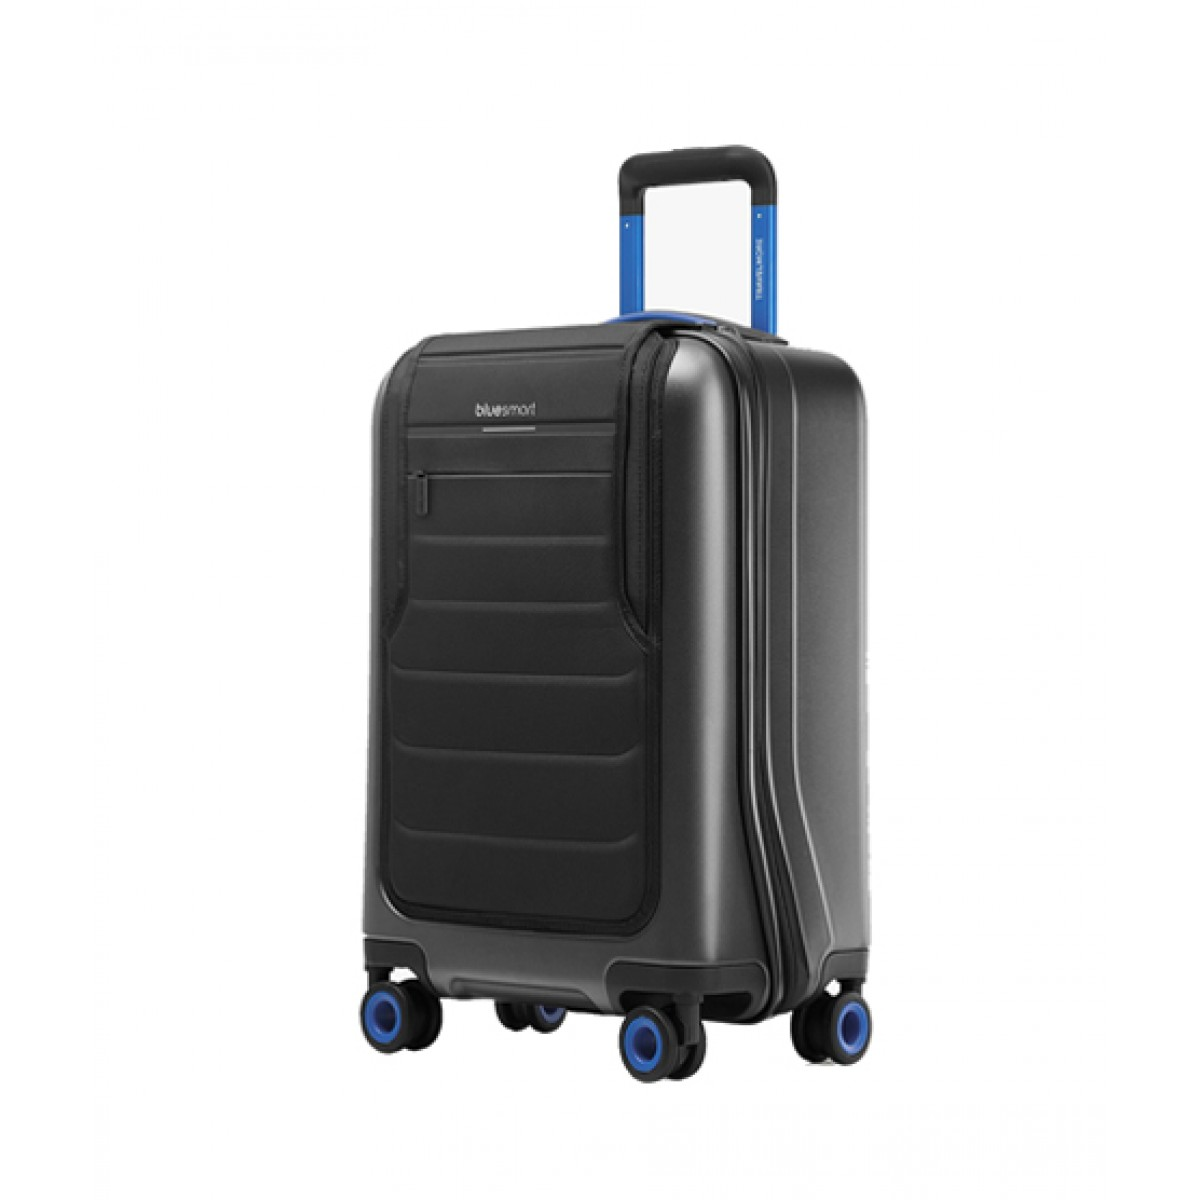 b30d0e99d6a6 Bluesmart One Smart Luggage